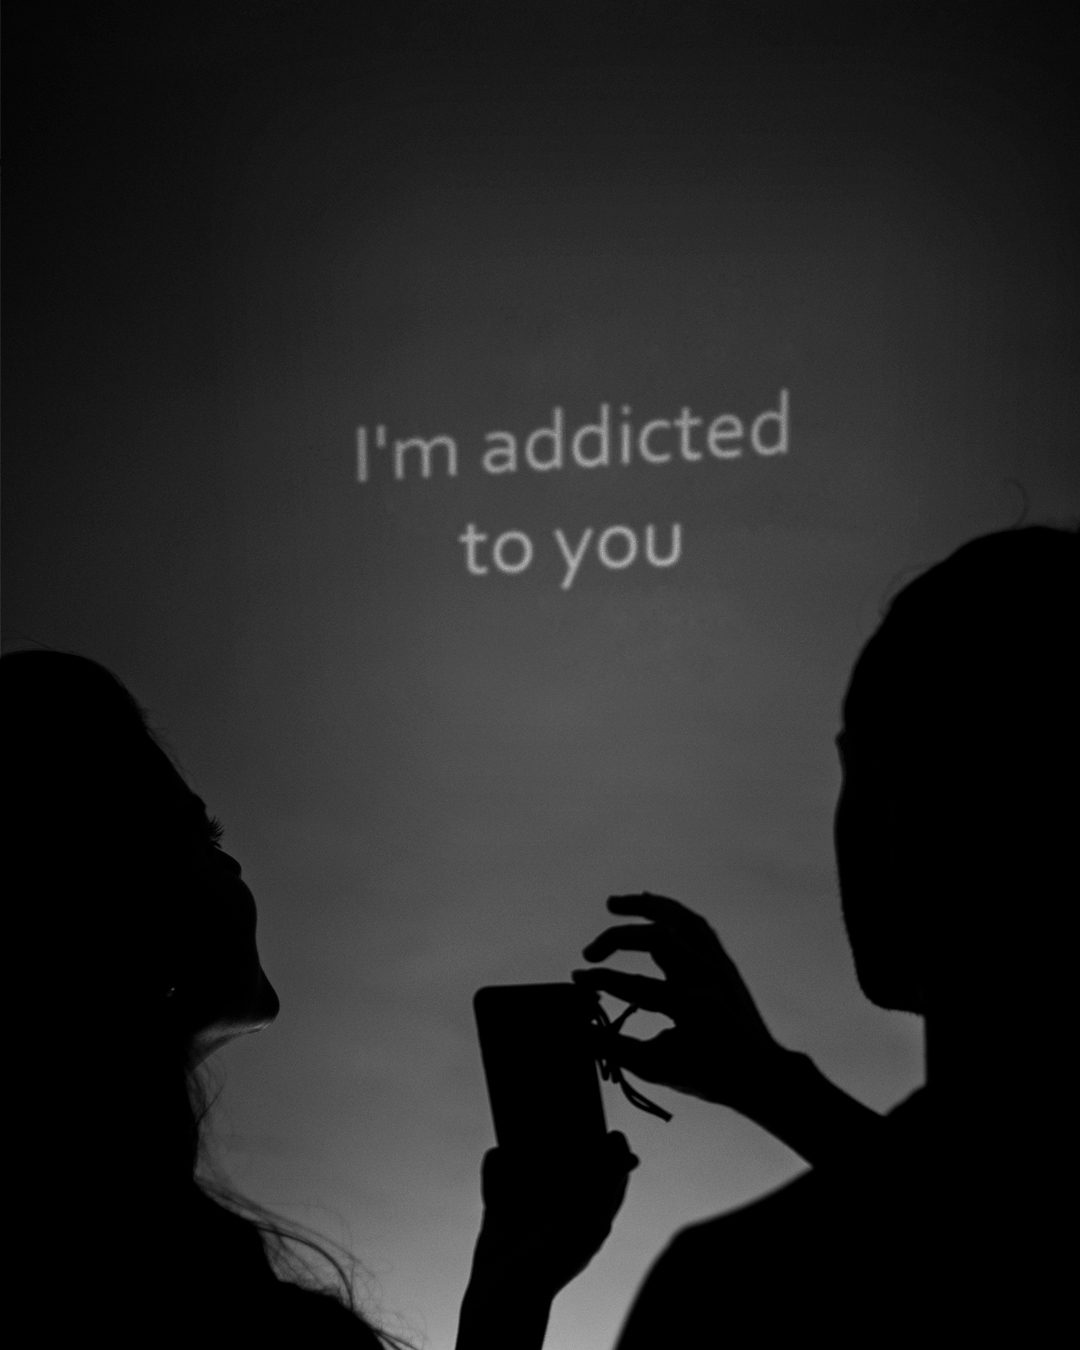 I'm addicted to you1